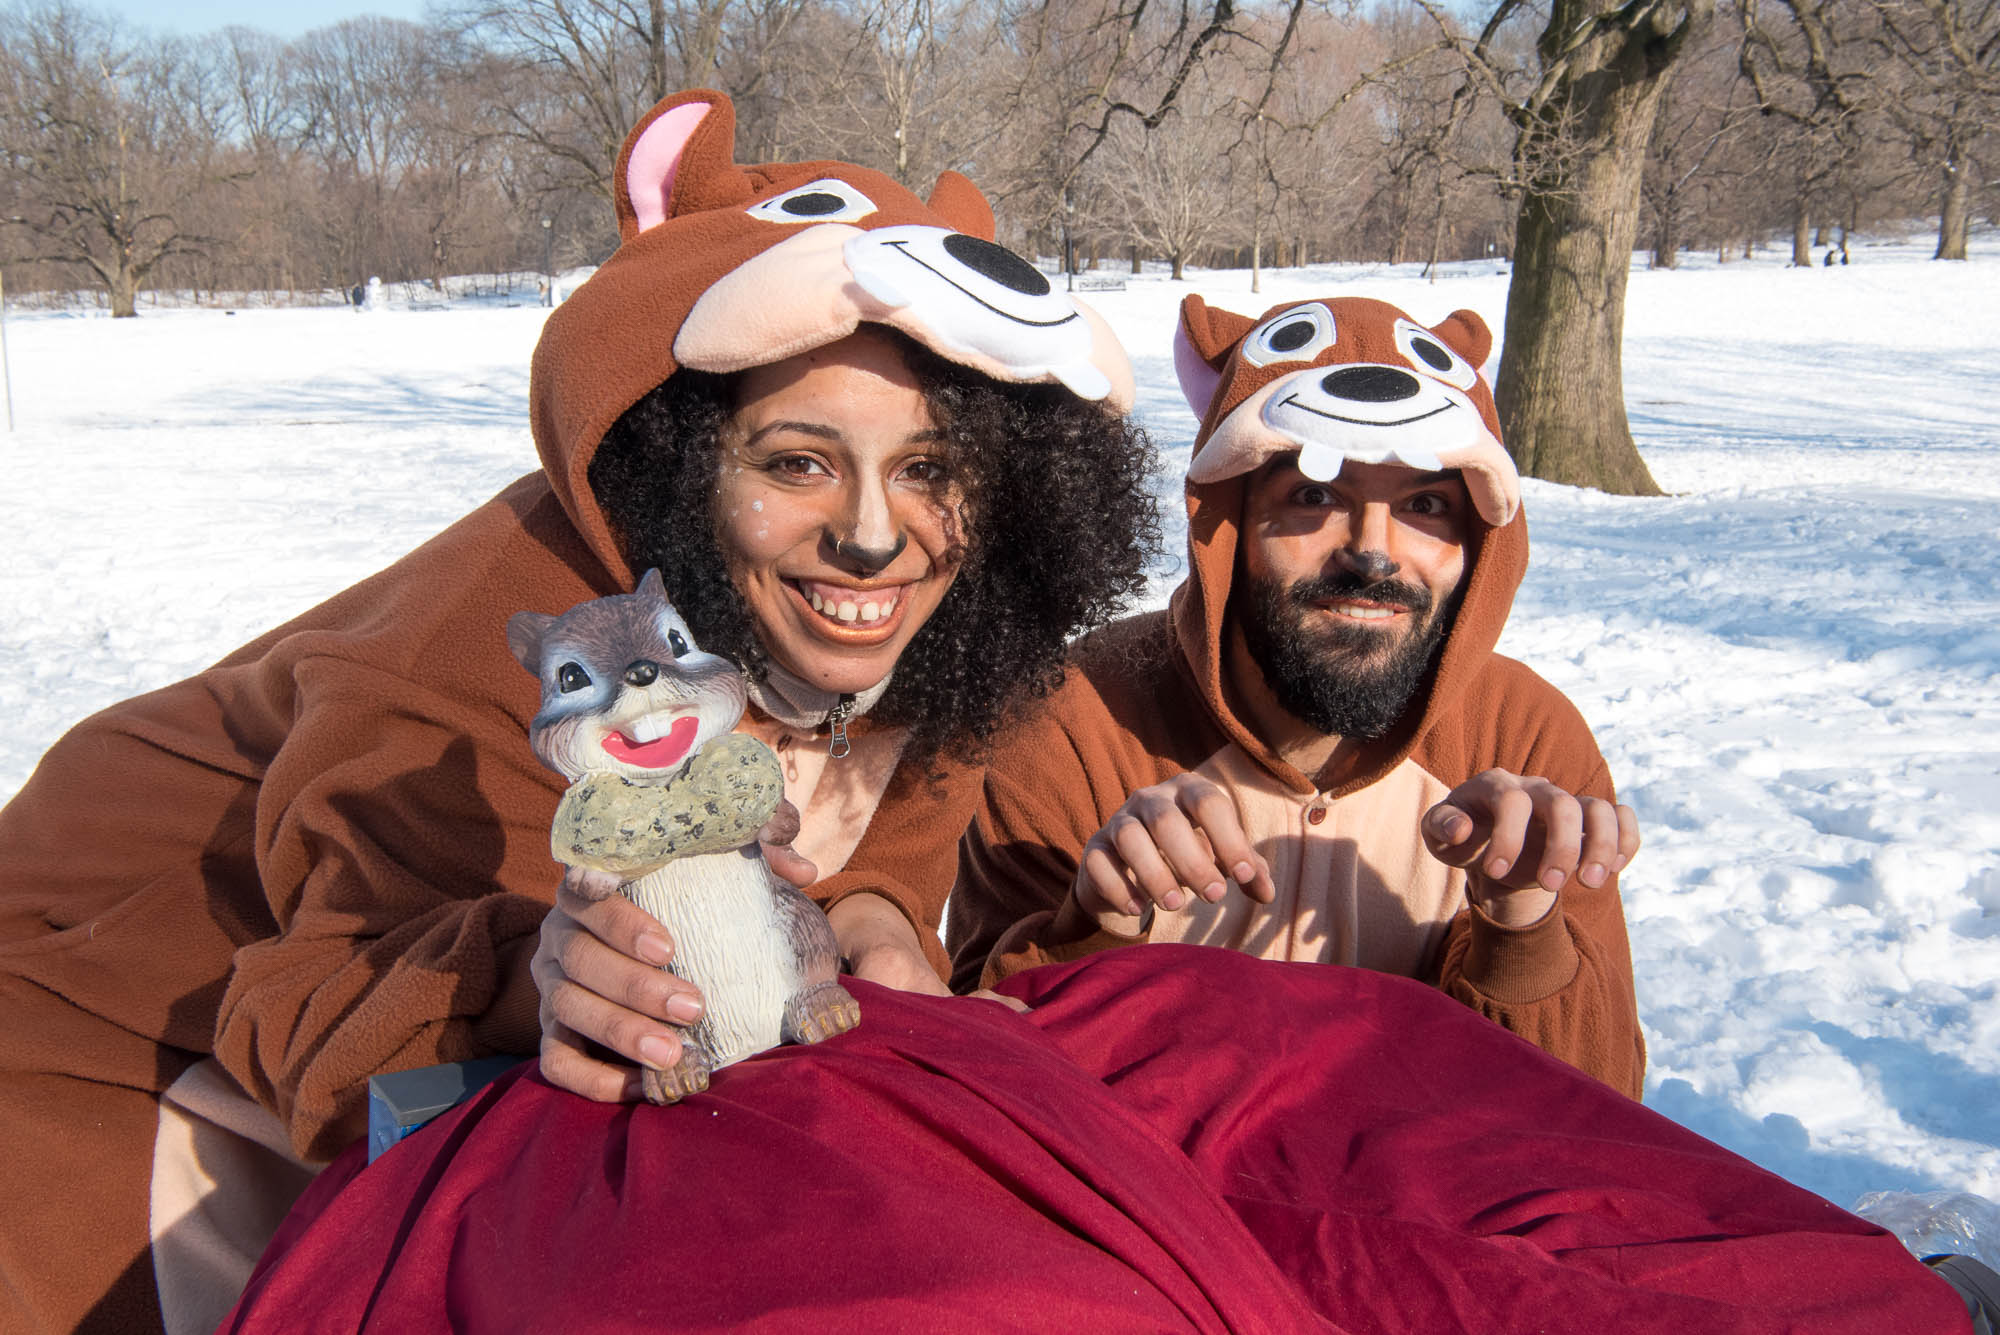 Members of Team Nutty by Nature during Competitive Winter Picnicking in Prospect Park on Saturday, March 2, 2019.